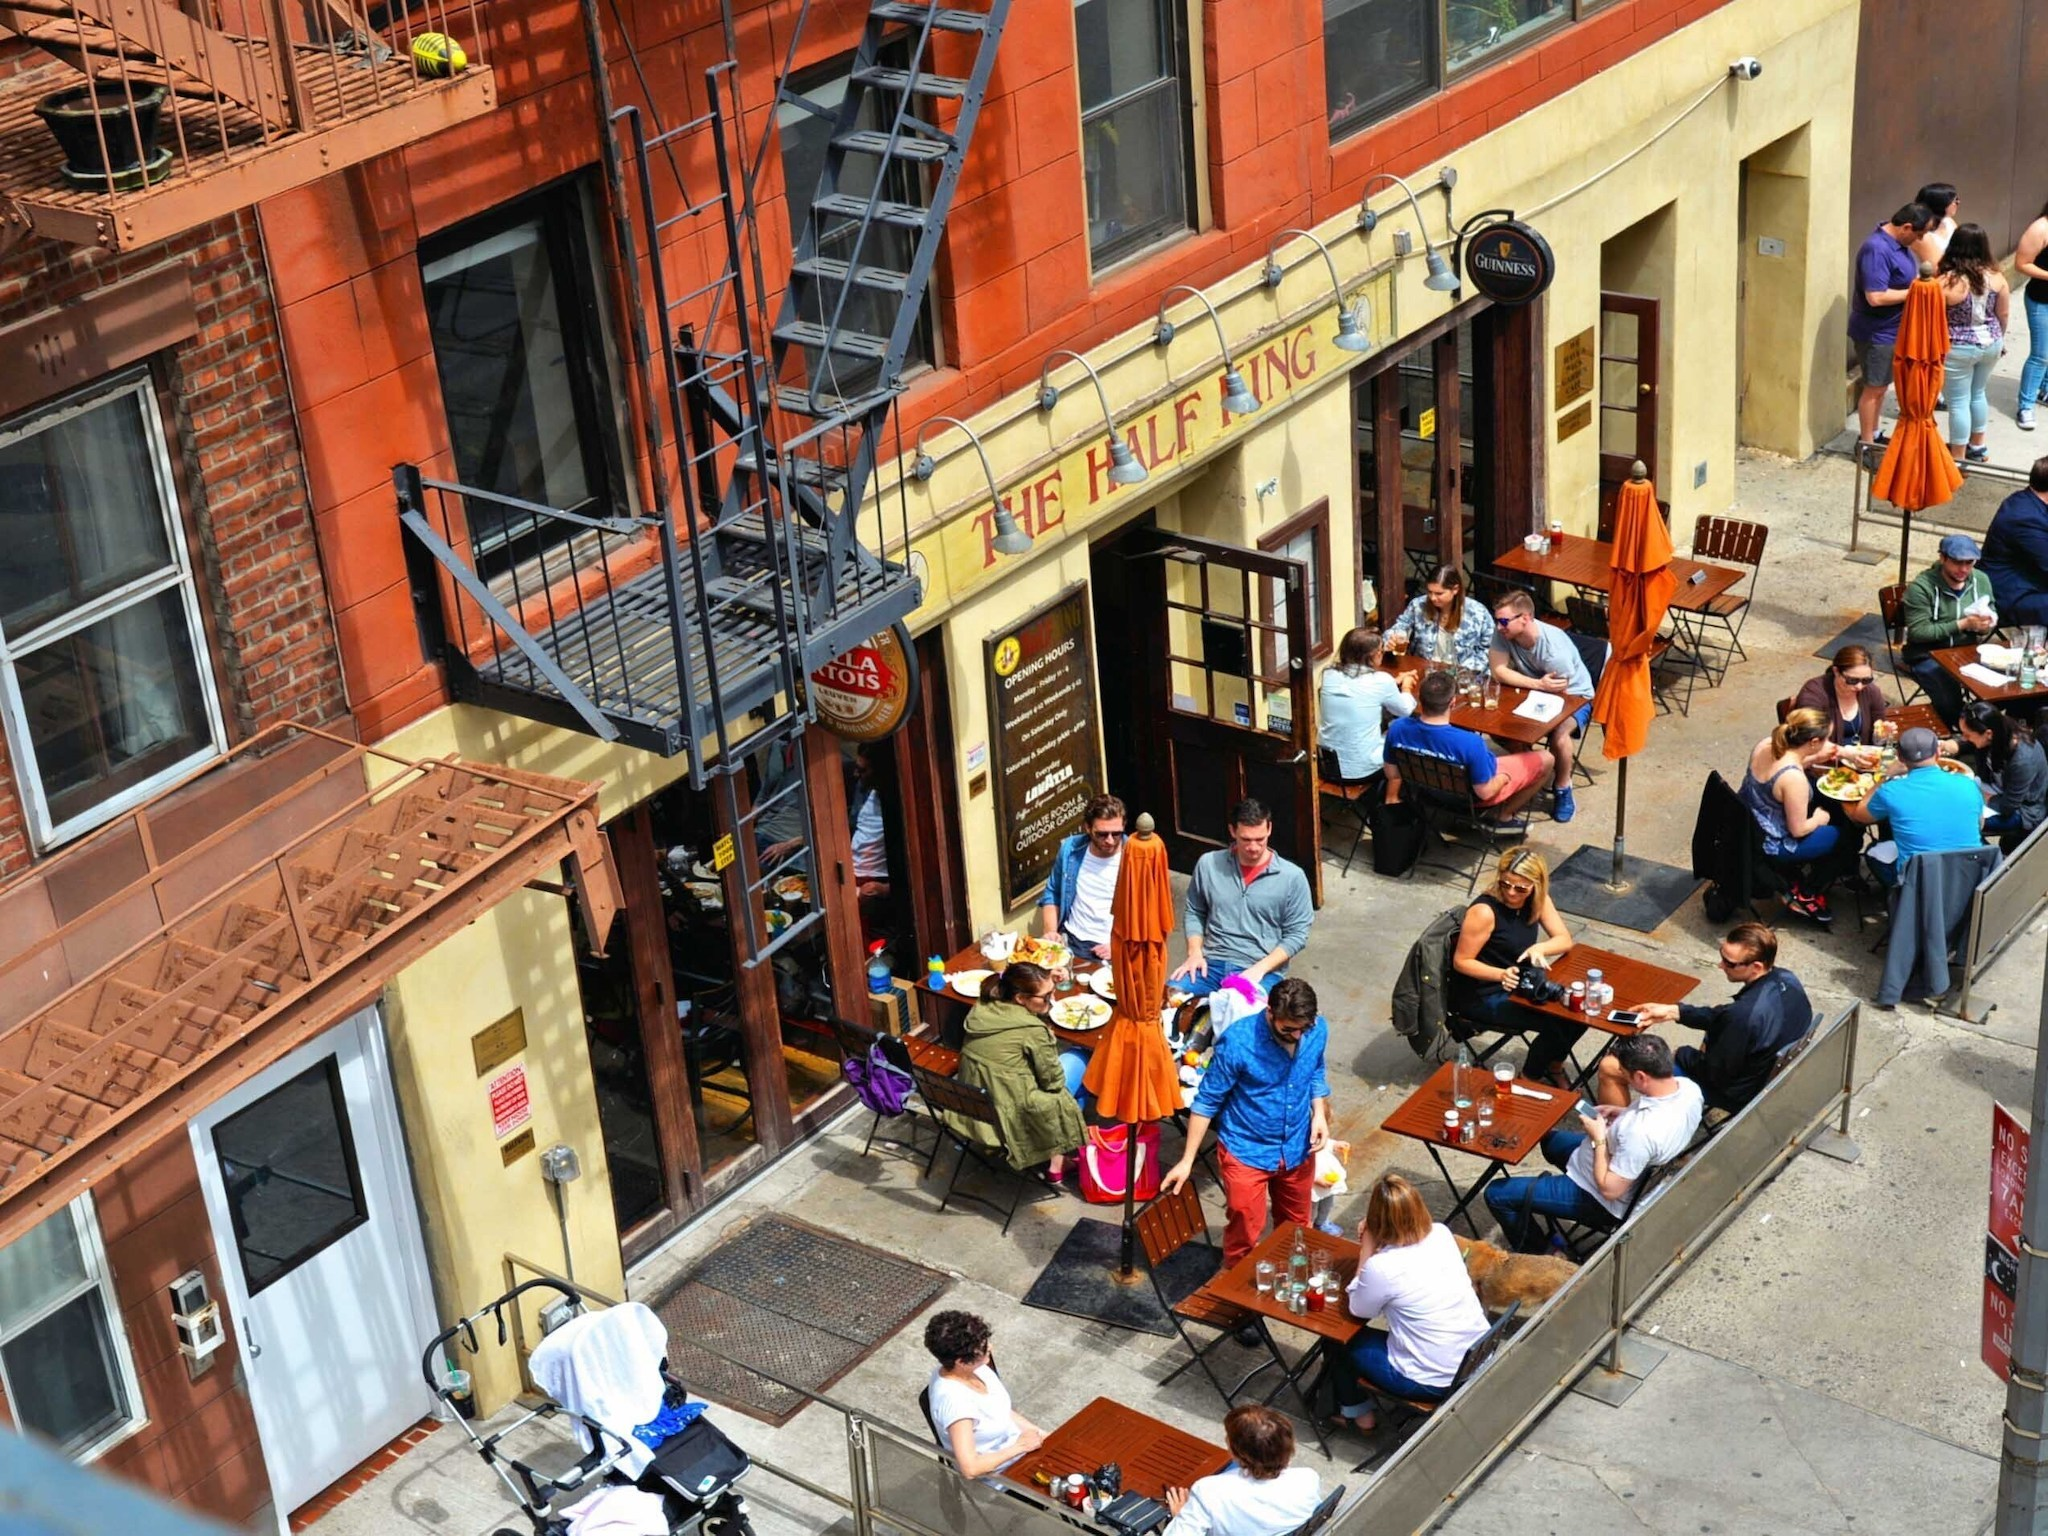 Here are NYC's official guidelines for outdoor dining